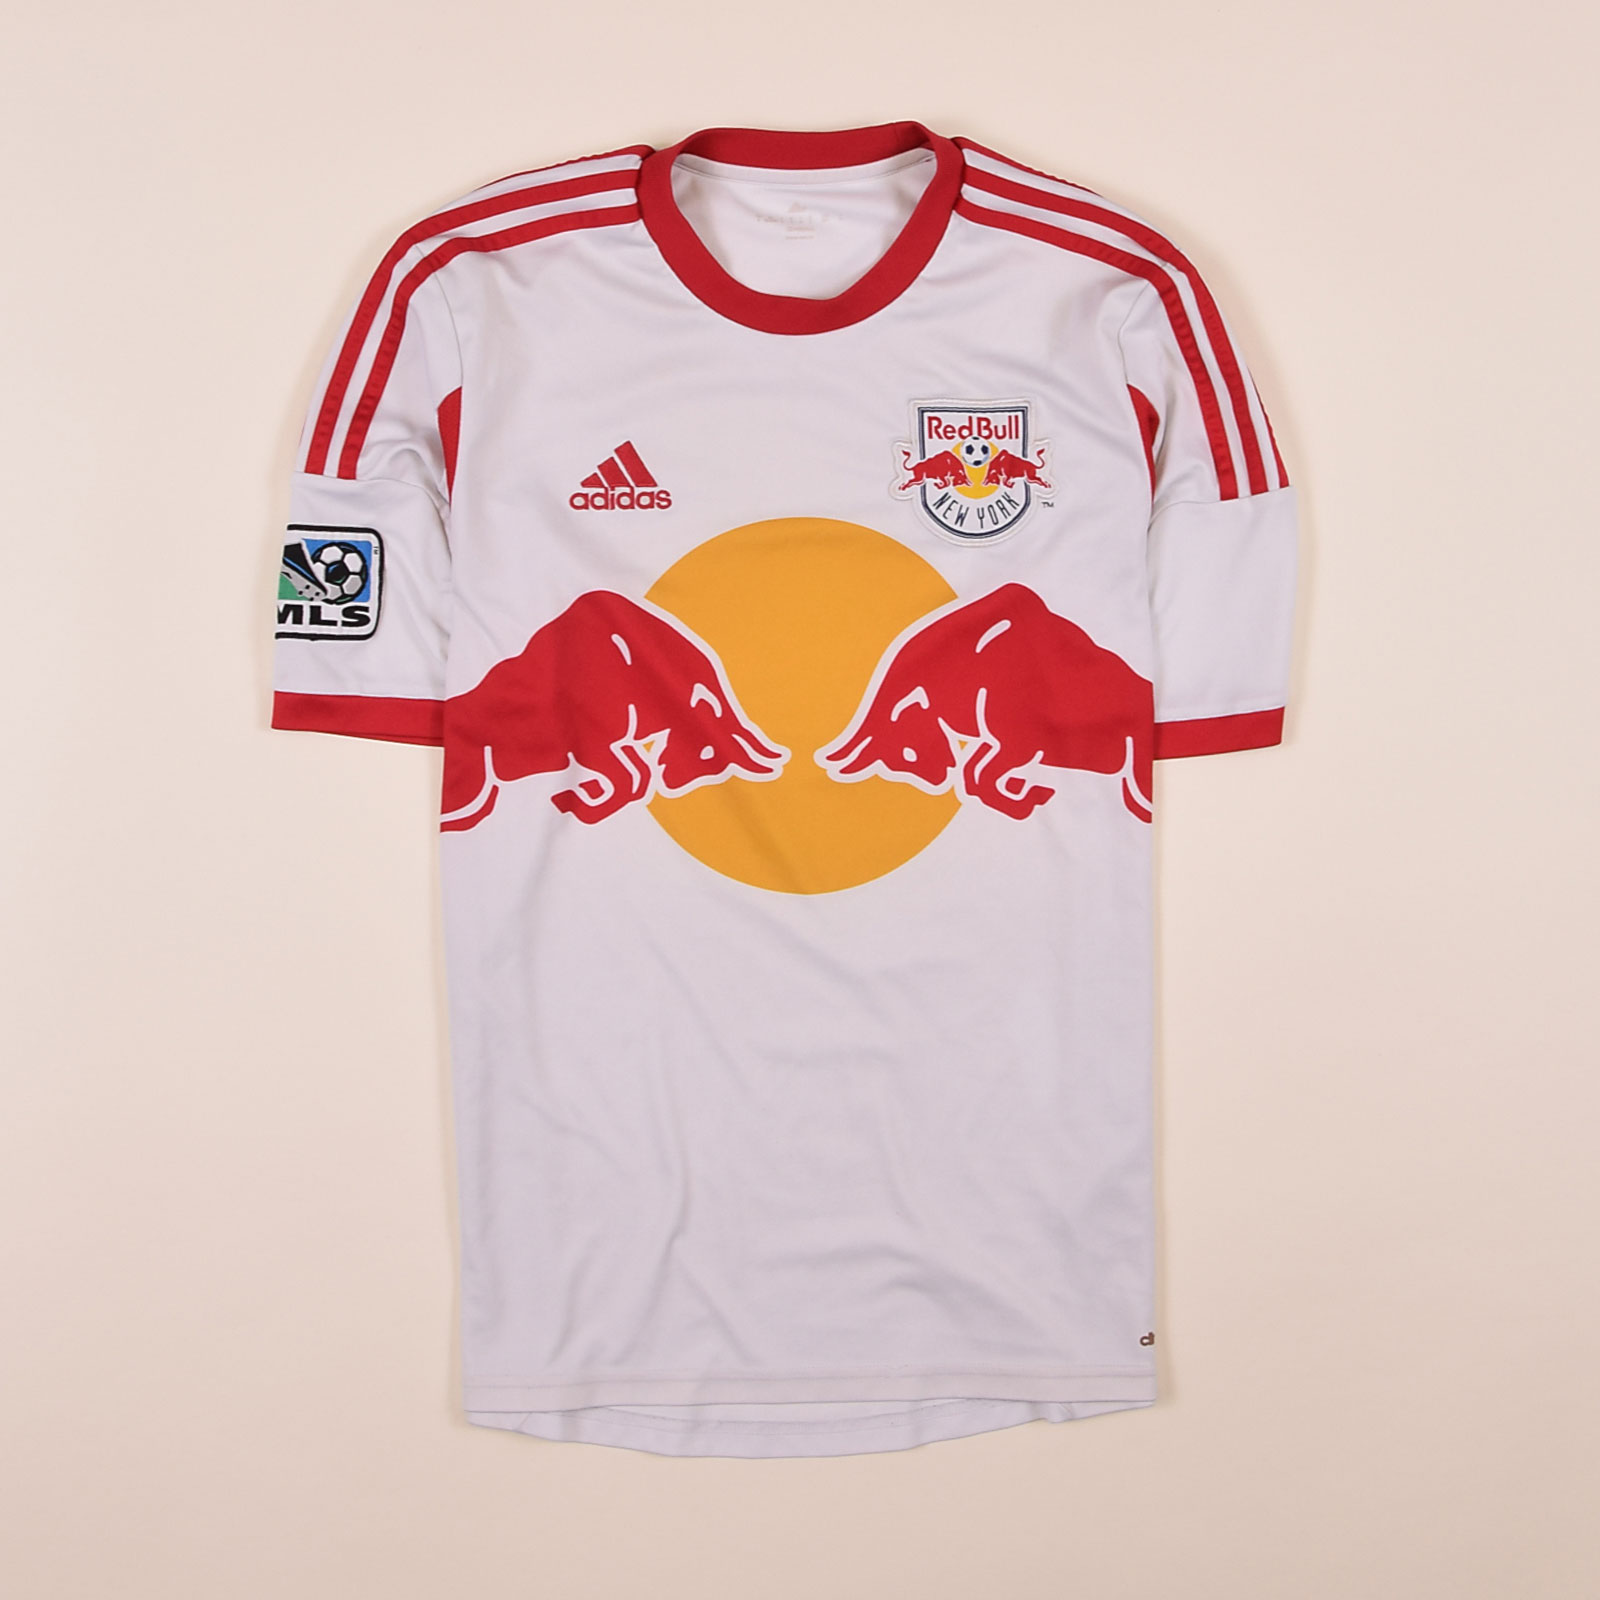 RED BULL NEW YORK NY Trikot Herren XL Adidas NYC Redbull